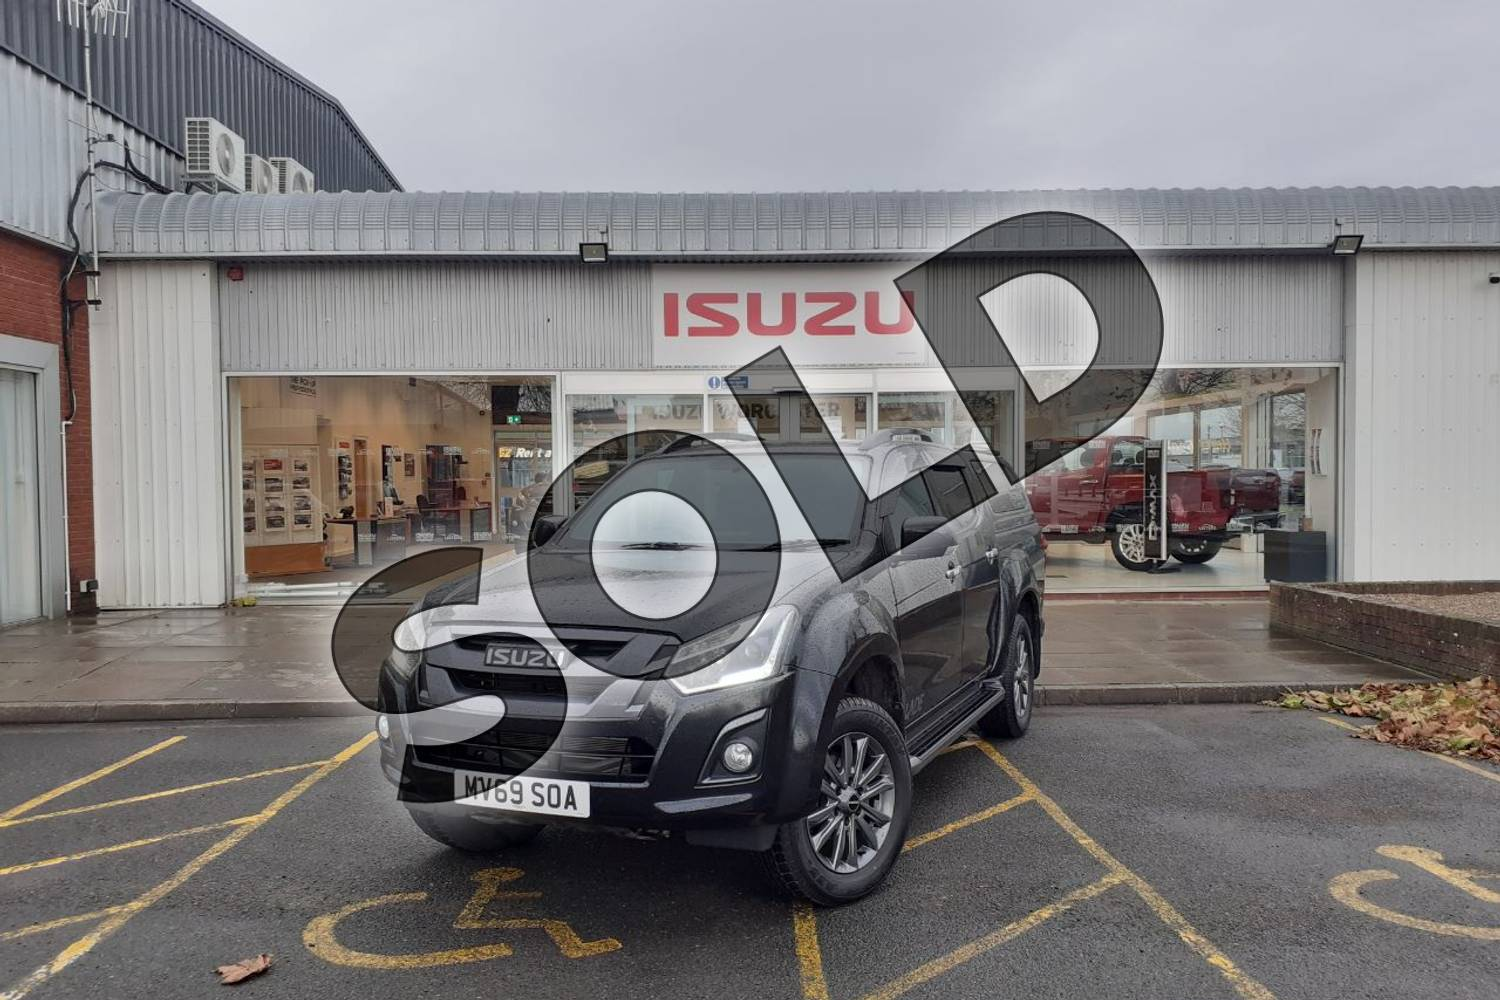 2019 Isuzu D-MAX Diesel 1.9 Blade Double Cab 4x4 in Black at Listers Isuzu Worcester